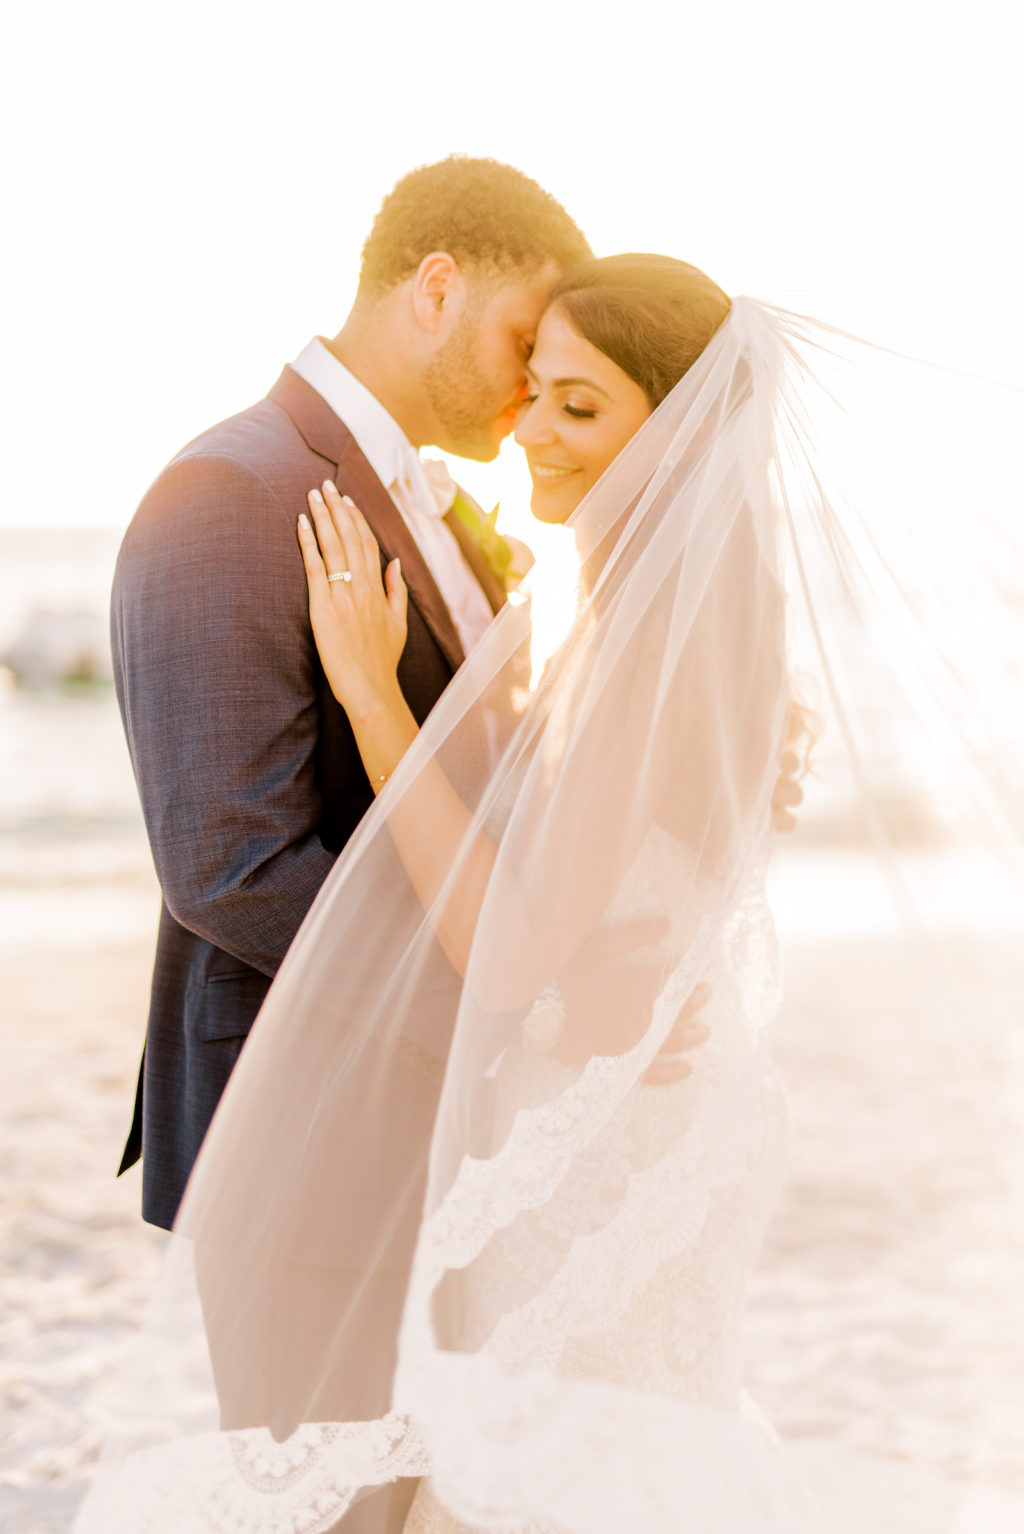 Sunset Bride in Full Length Veil and Groom Portrait on Beach | Tampa Bay Wedding Photographer Kera Photography